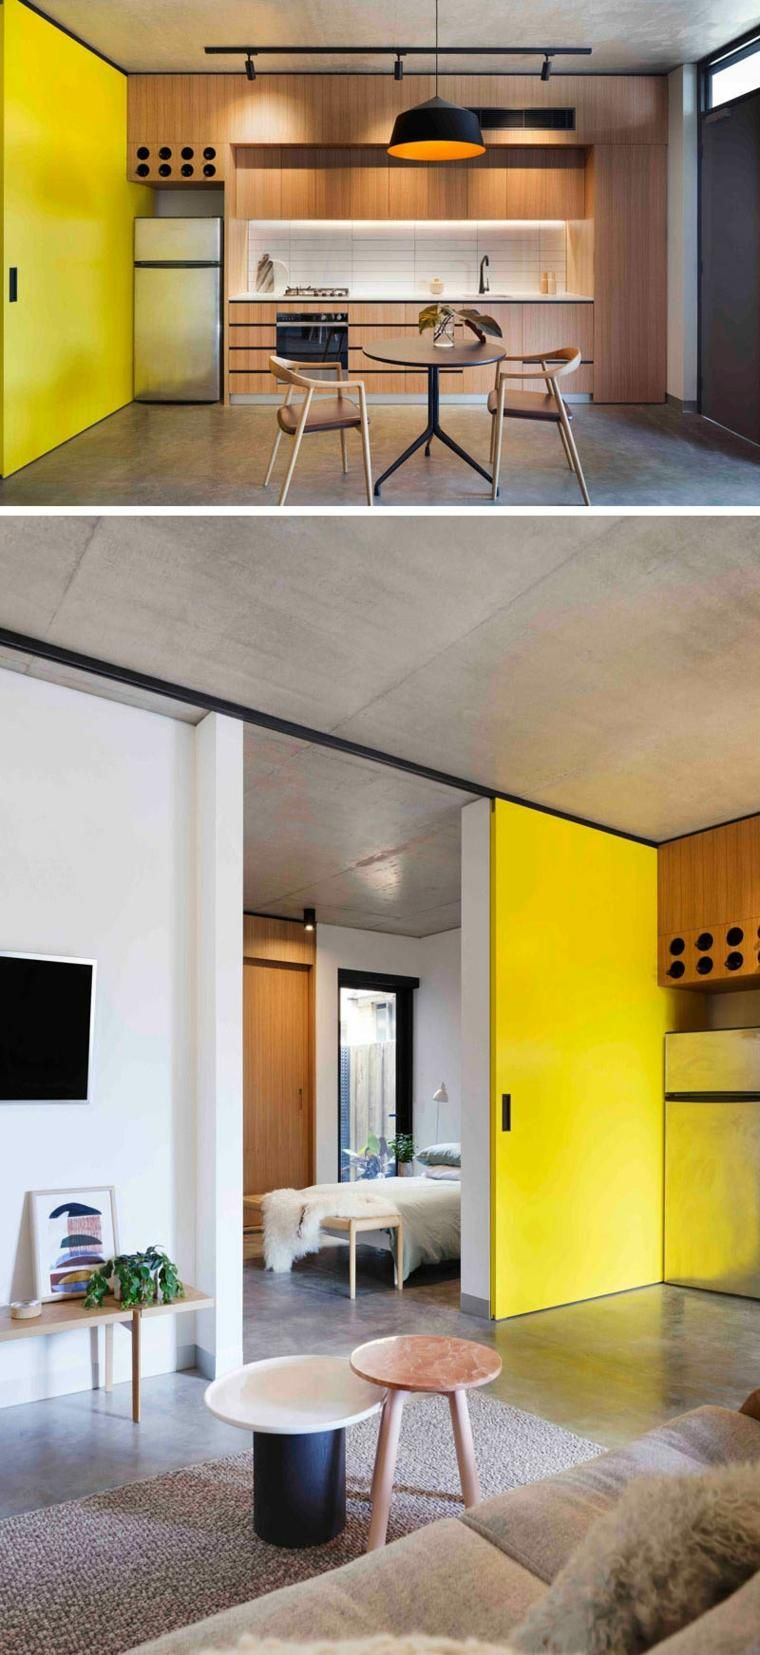 Interior Design - Die Apartments in der Coppin Street von MUSK ...